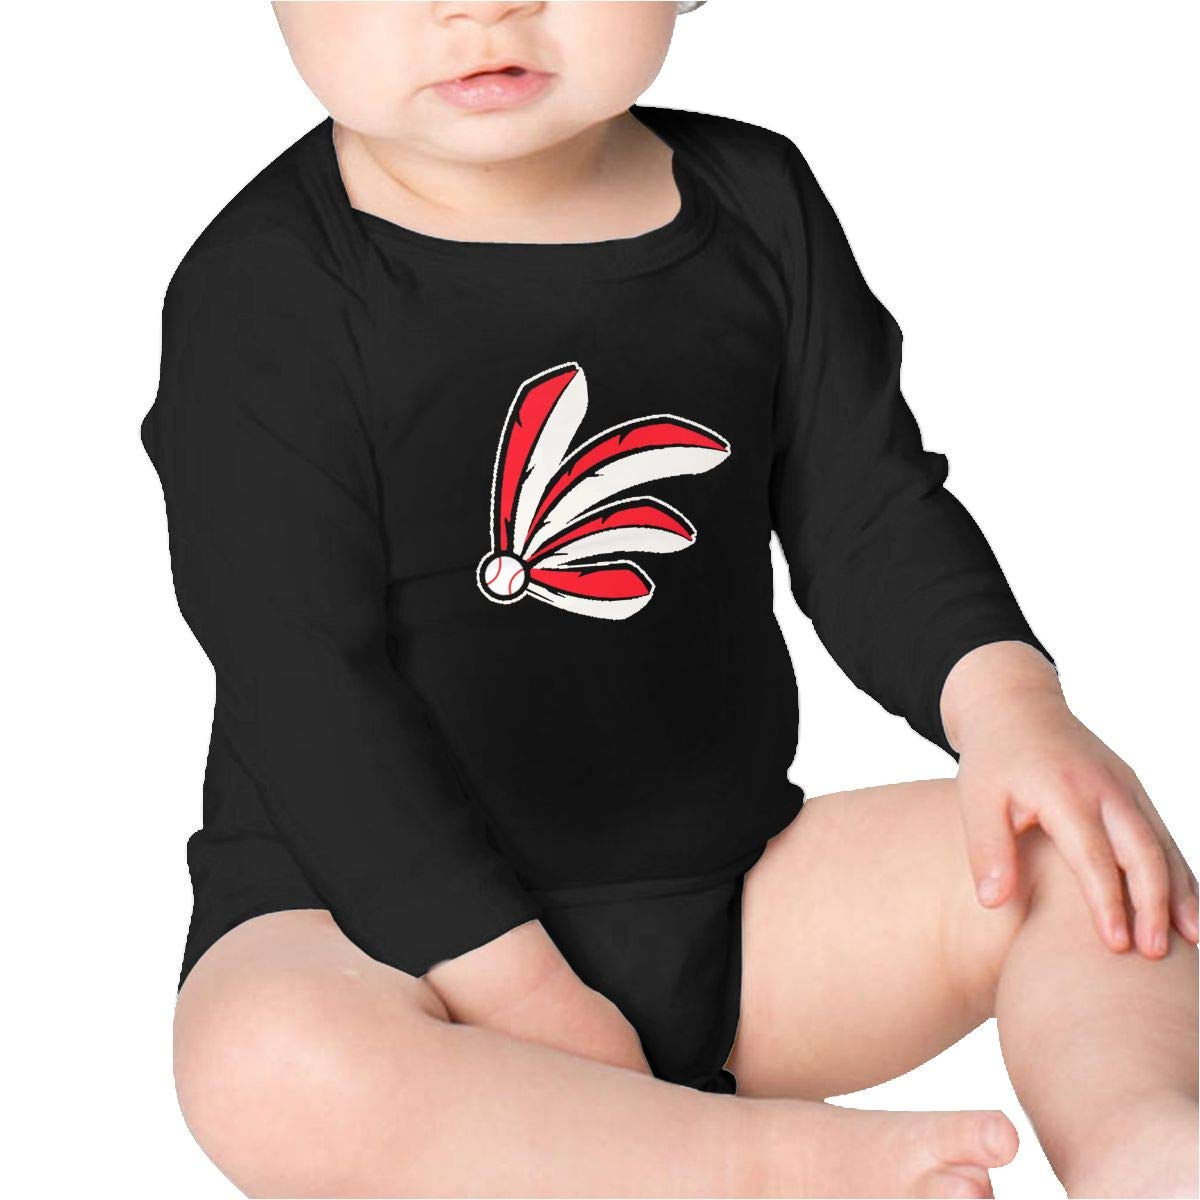 Pikaqiuleilei Baseball Feathers Baby Cotton,Long Sleeve Baby Romper